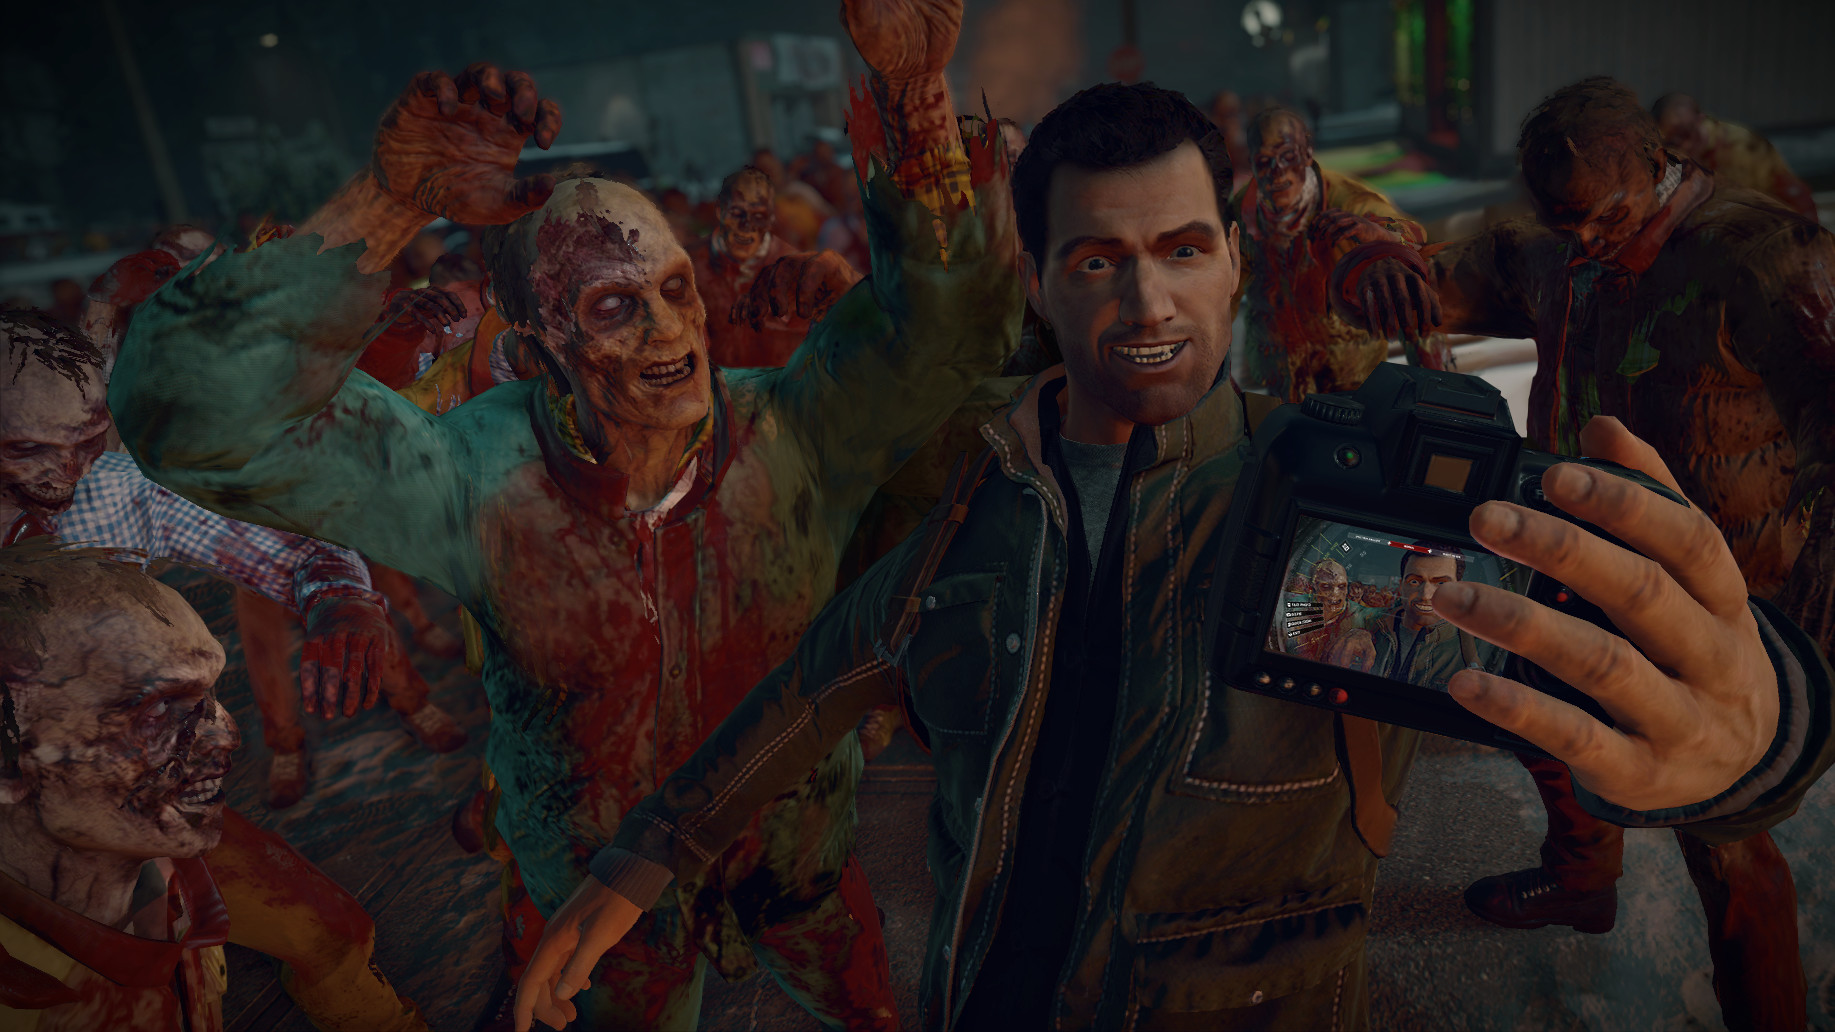 Dead Rising 4 (Steam Key) + Bonus